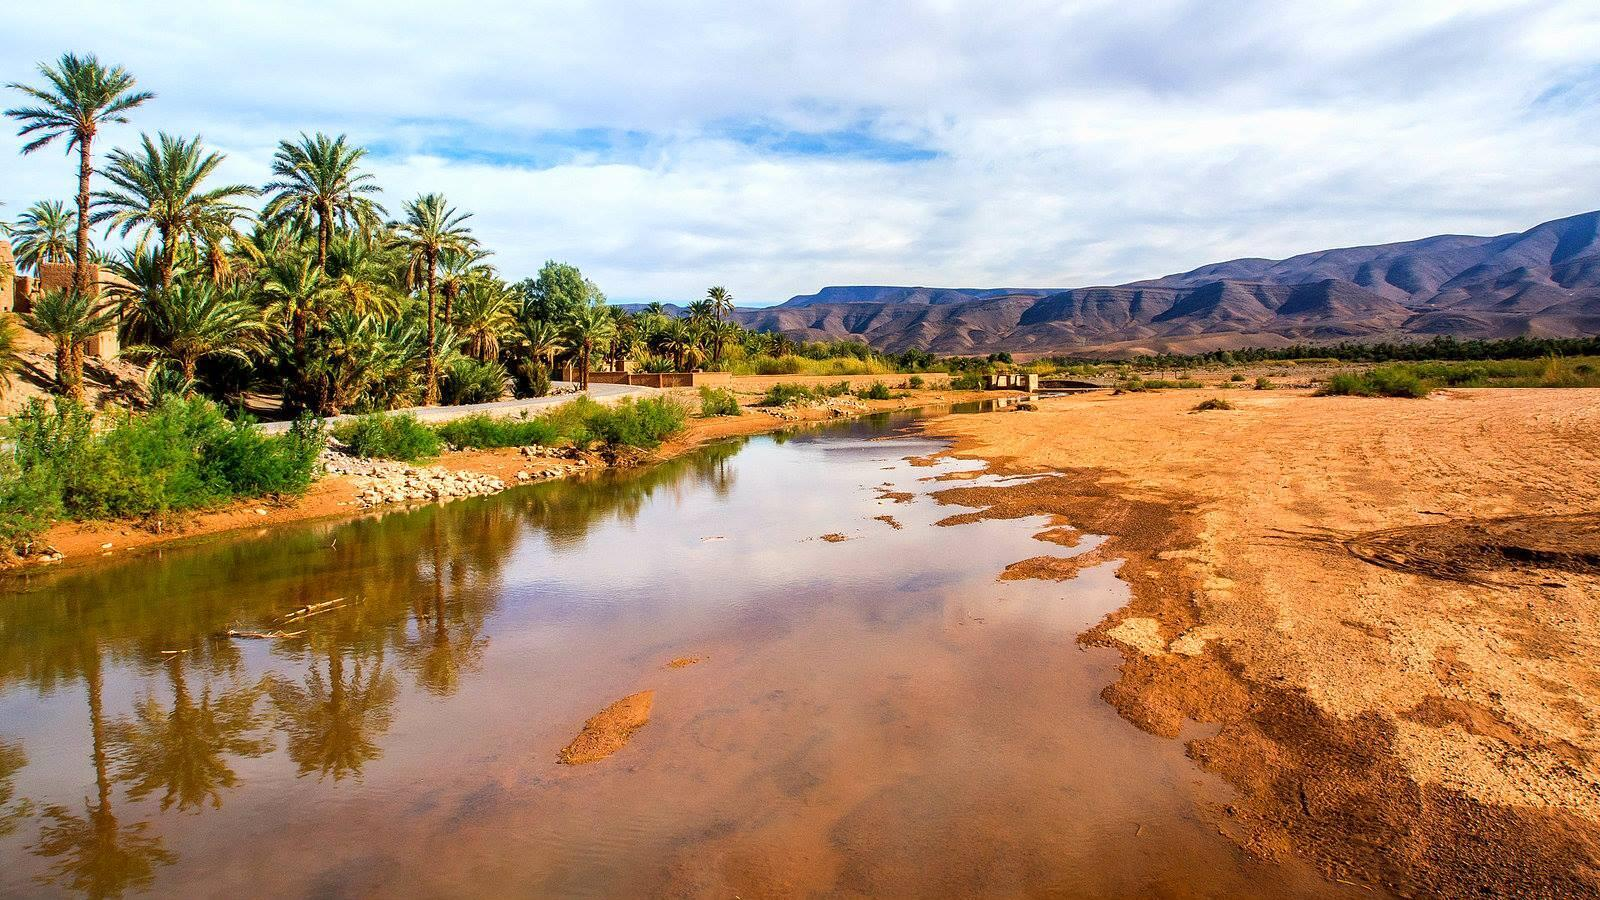 """Tafilalet, world's largest oasis - """"Sustainable Oasis"""" is part of three main initiatives supported by Morocco for #COP22"""